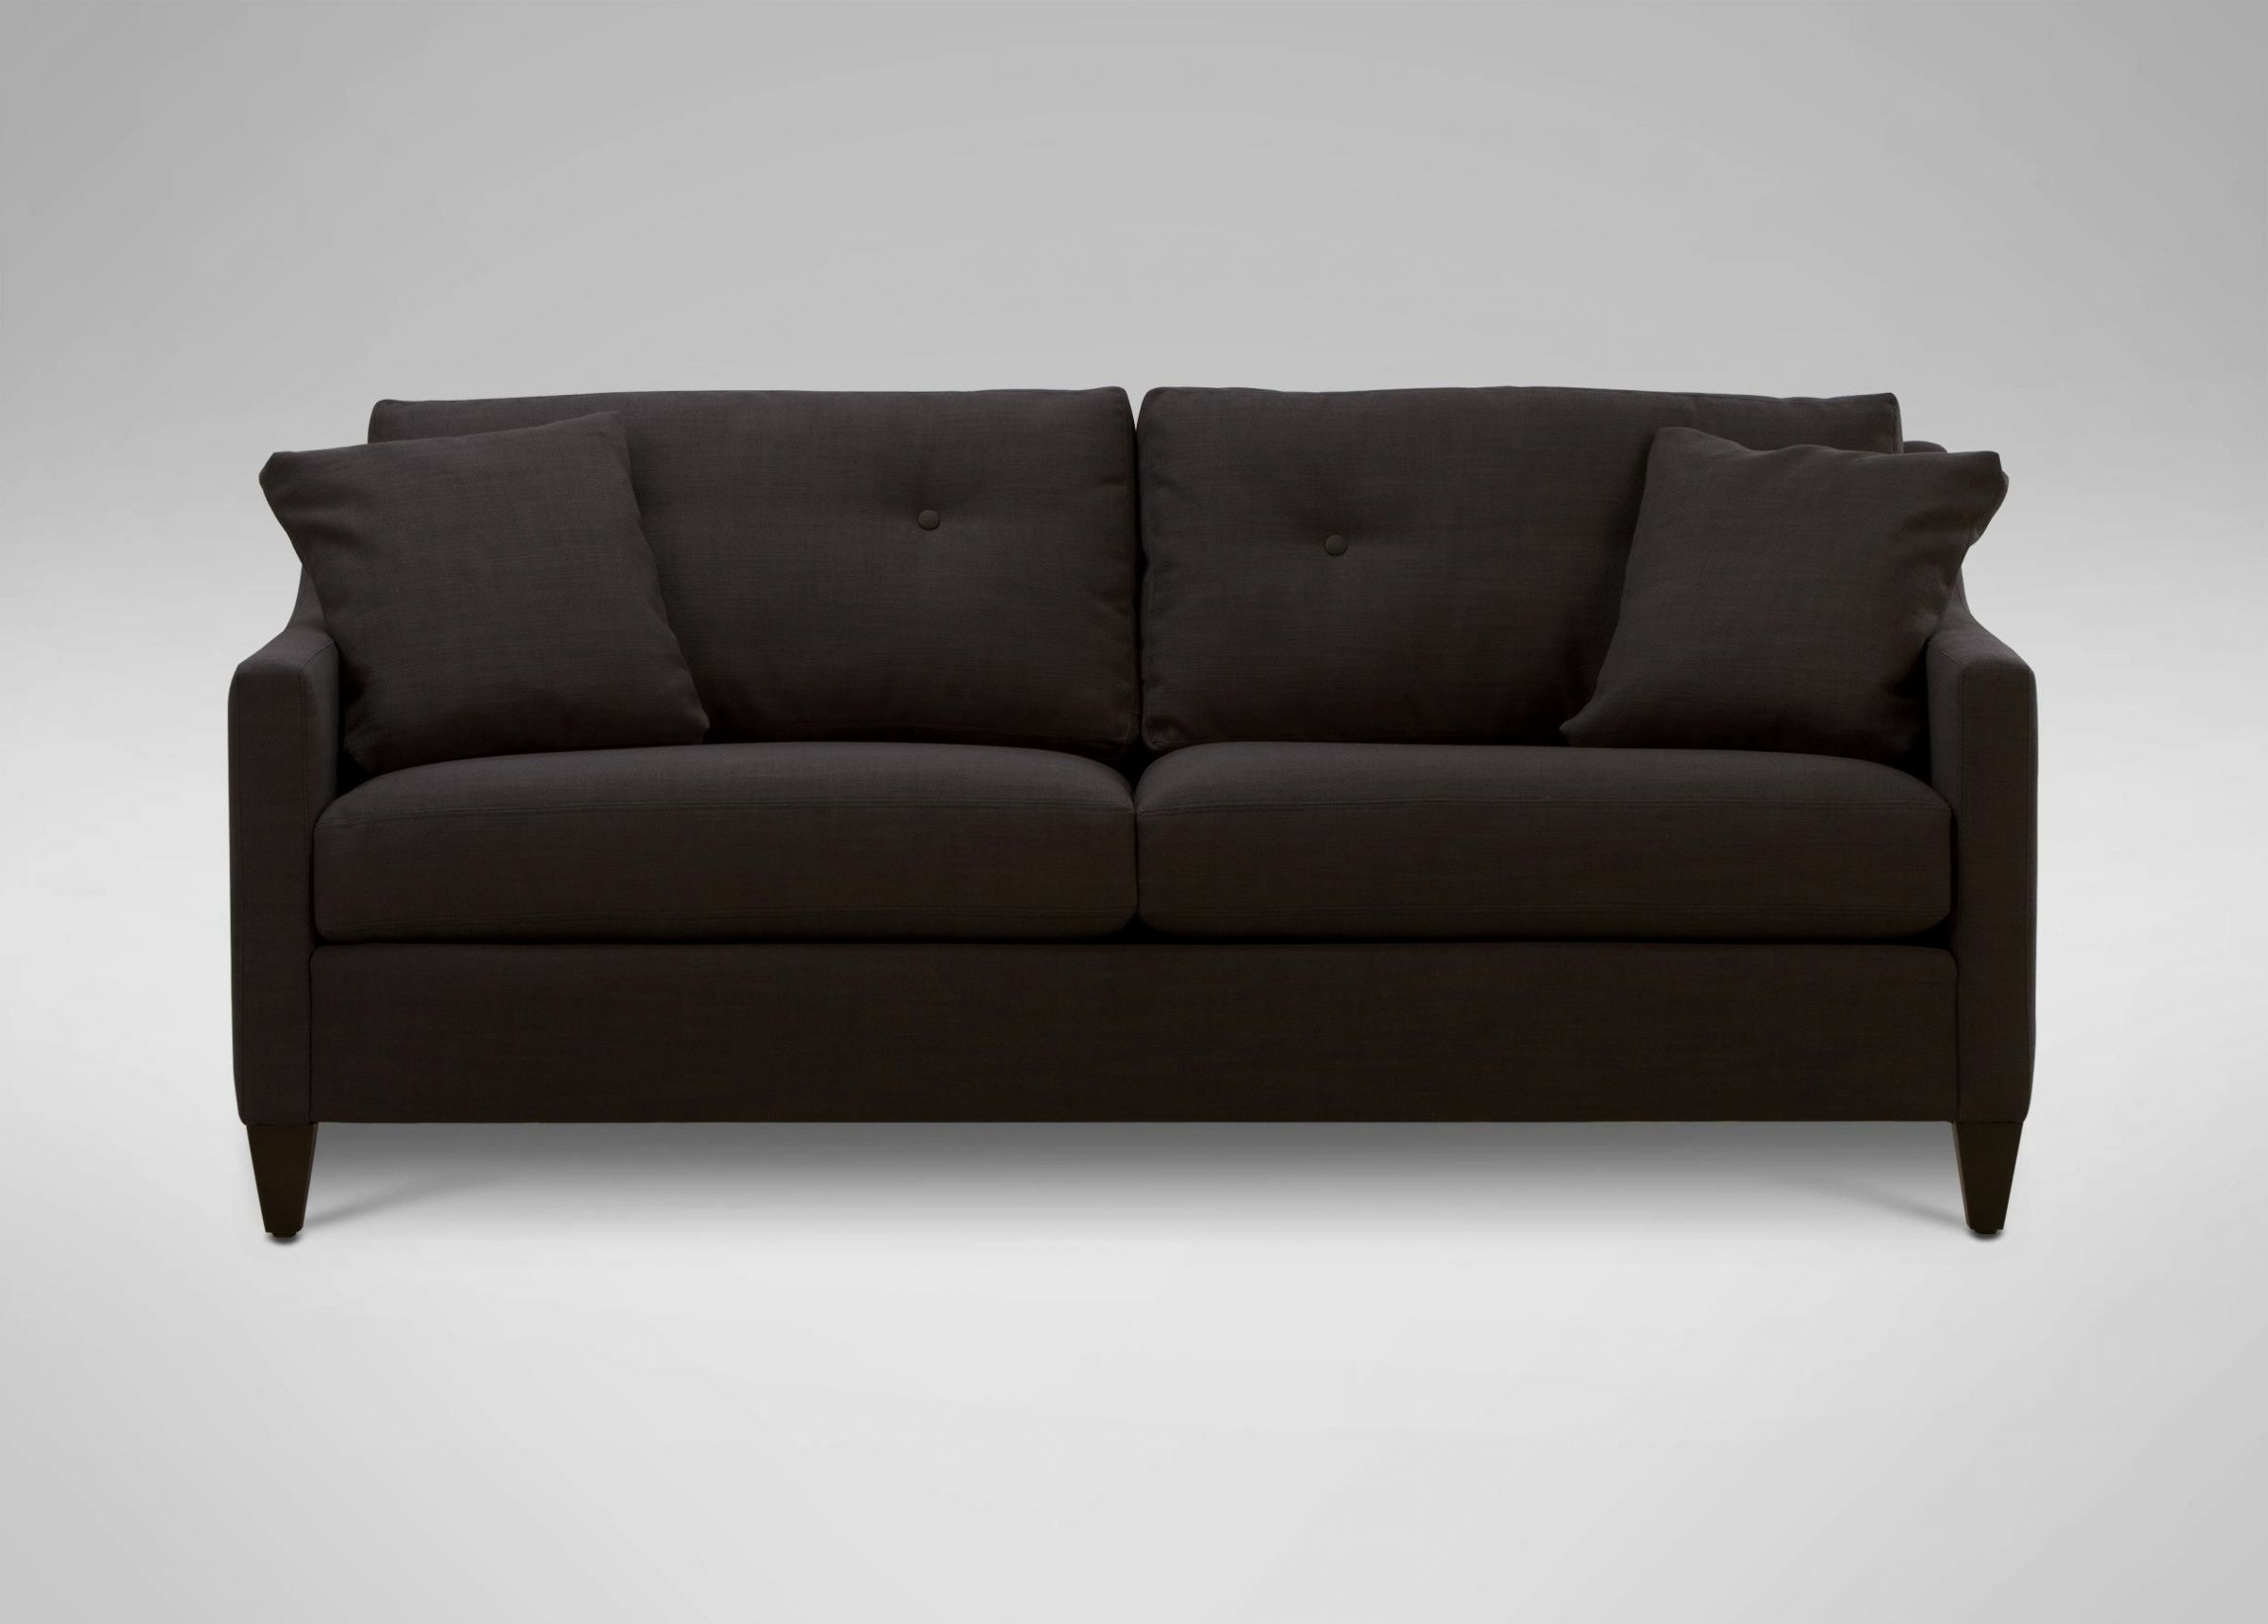 sleeper sofa under 200 wilson dfs 10 best collection of sectional sofas ideas